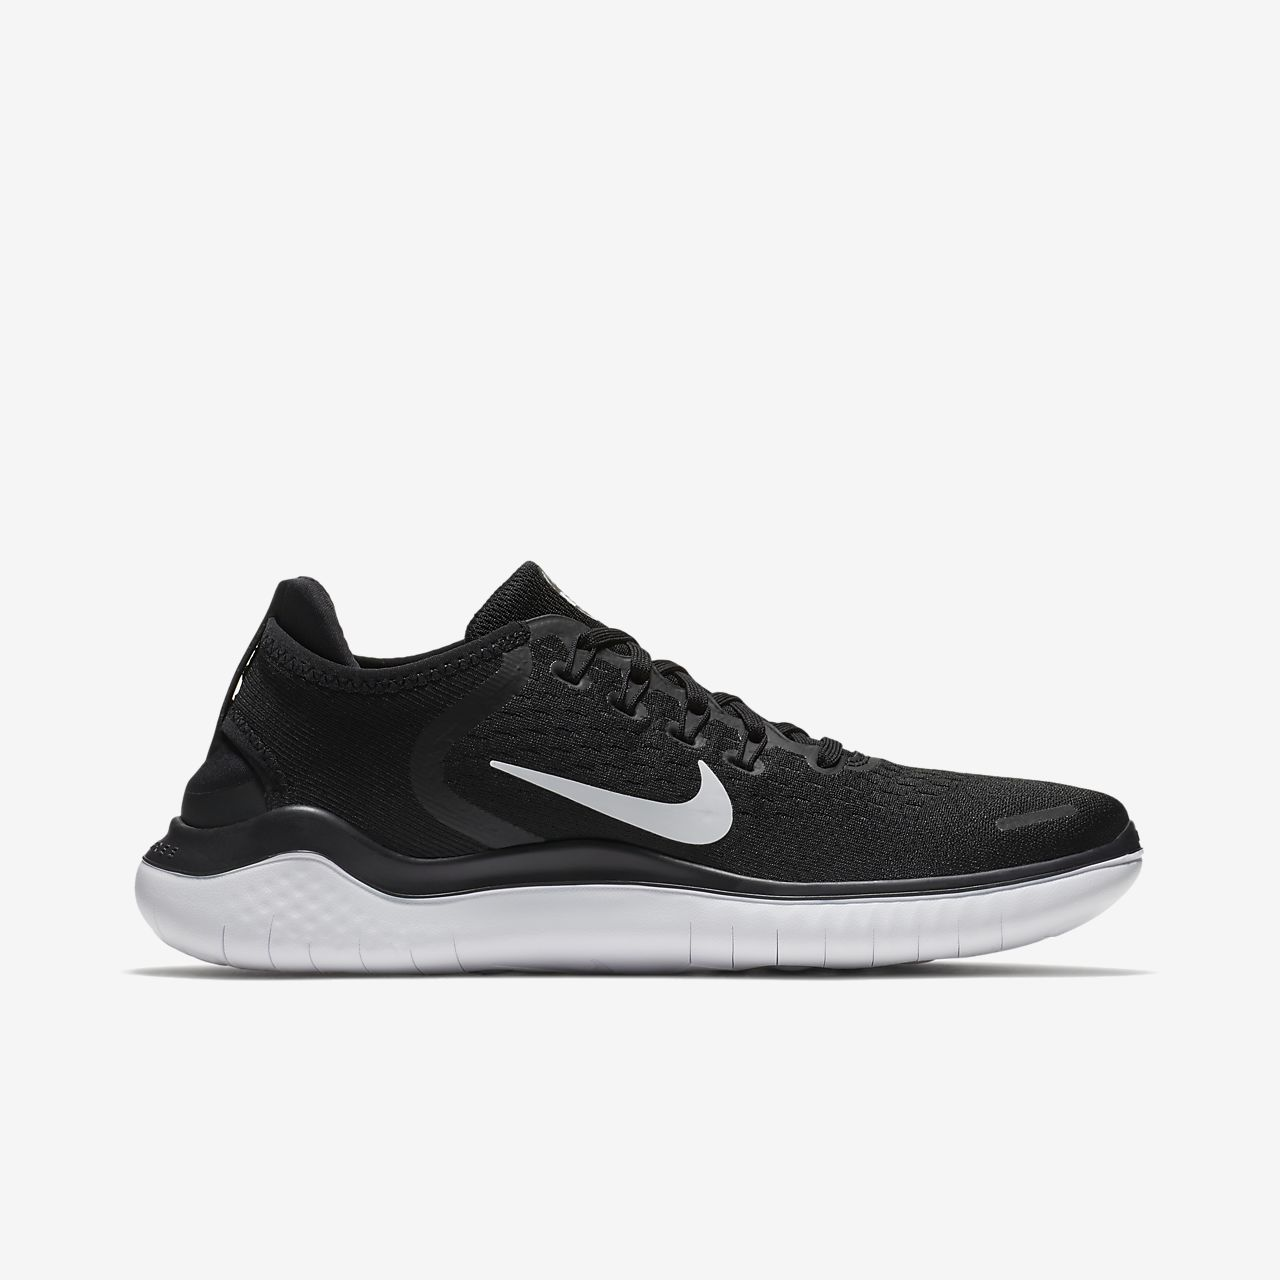 Nike Men's Free Rn 2018 Lace Up Sneakers 1MUehBgFM6